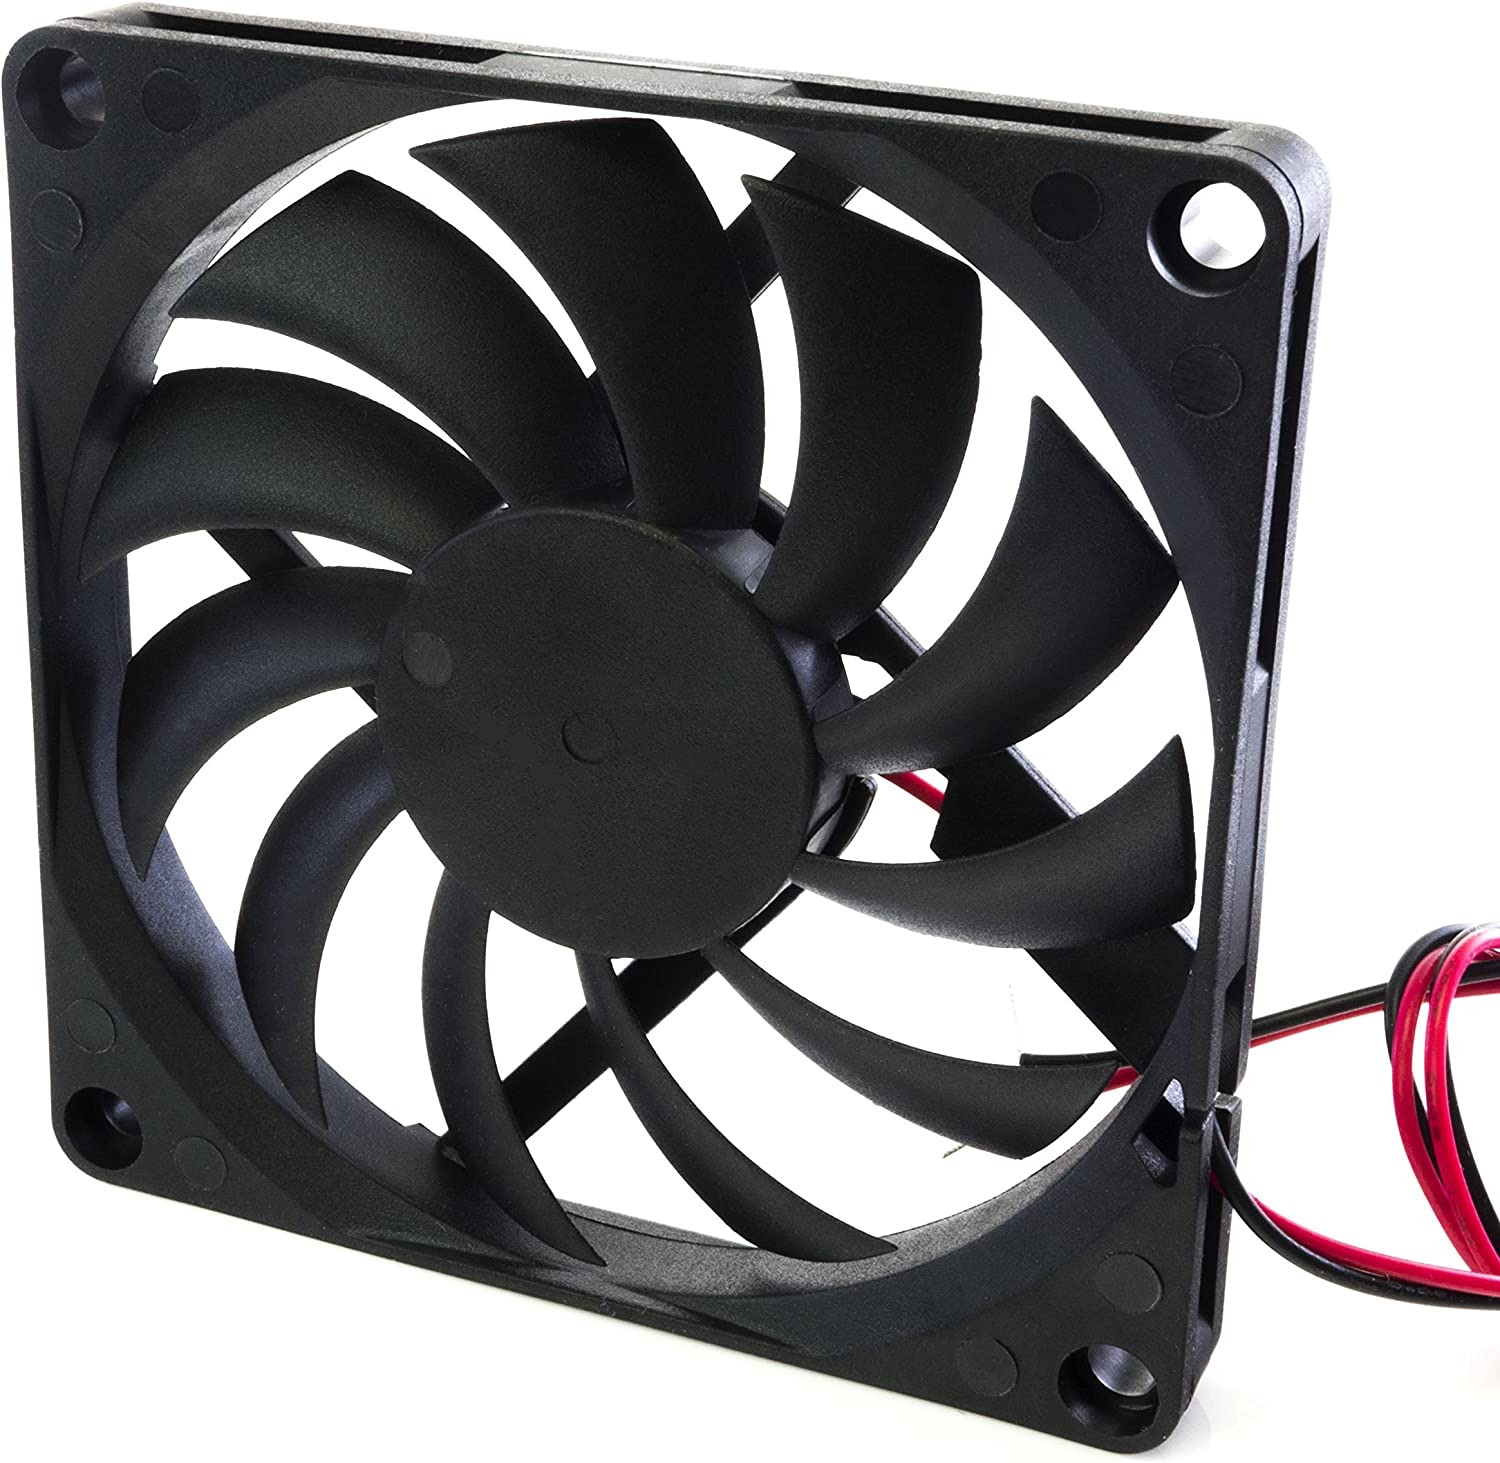 Maker Girl USA DC Case Fan 80mm x price Quie low-pricing 24V 10mm Brushless